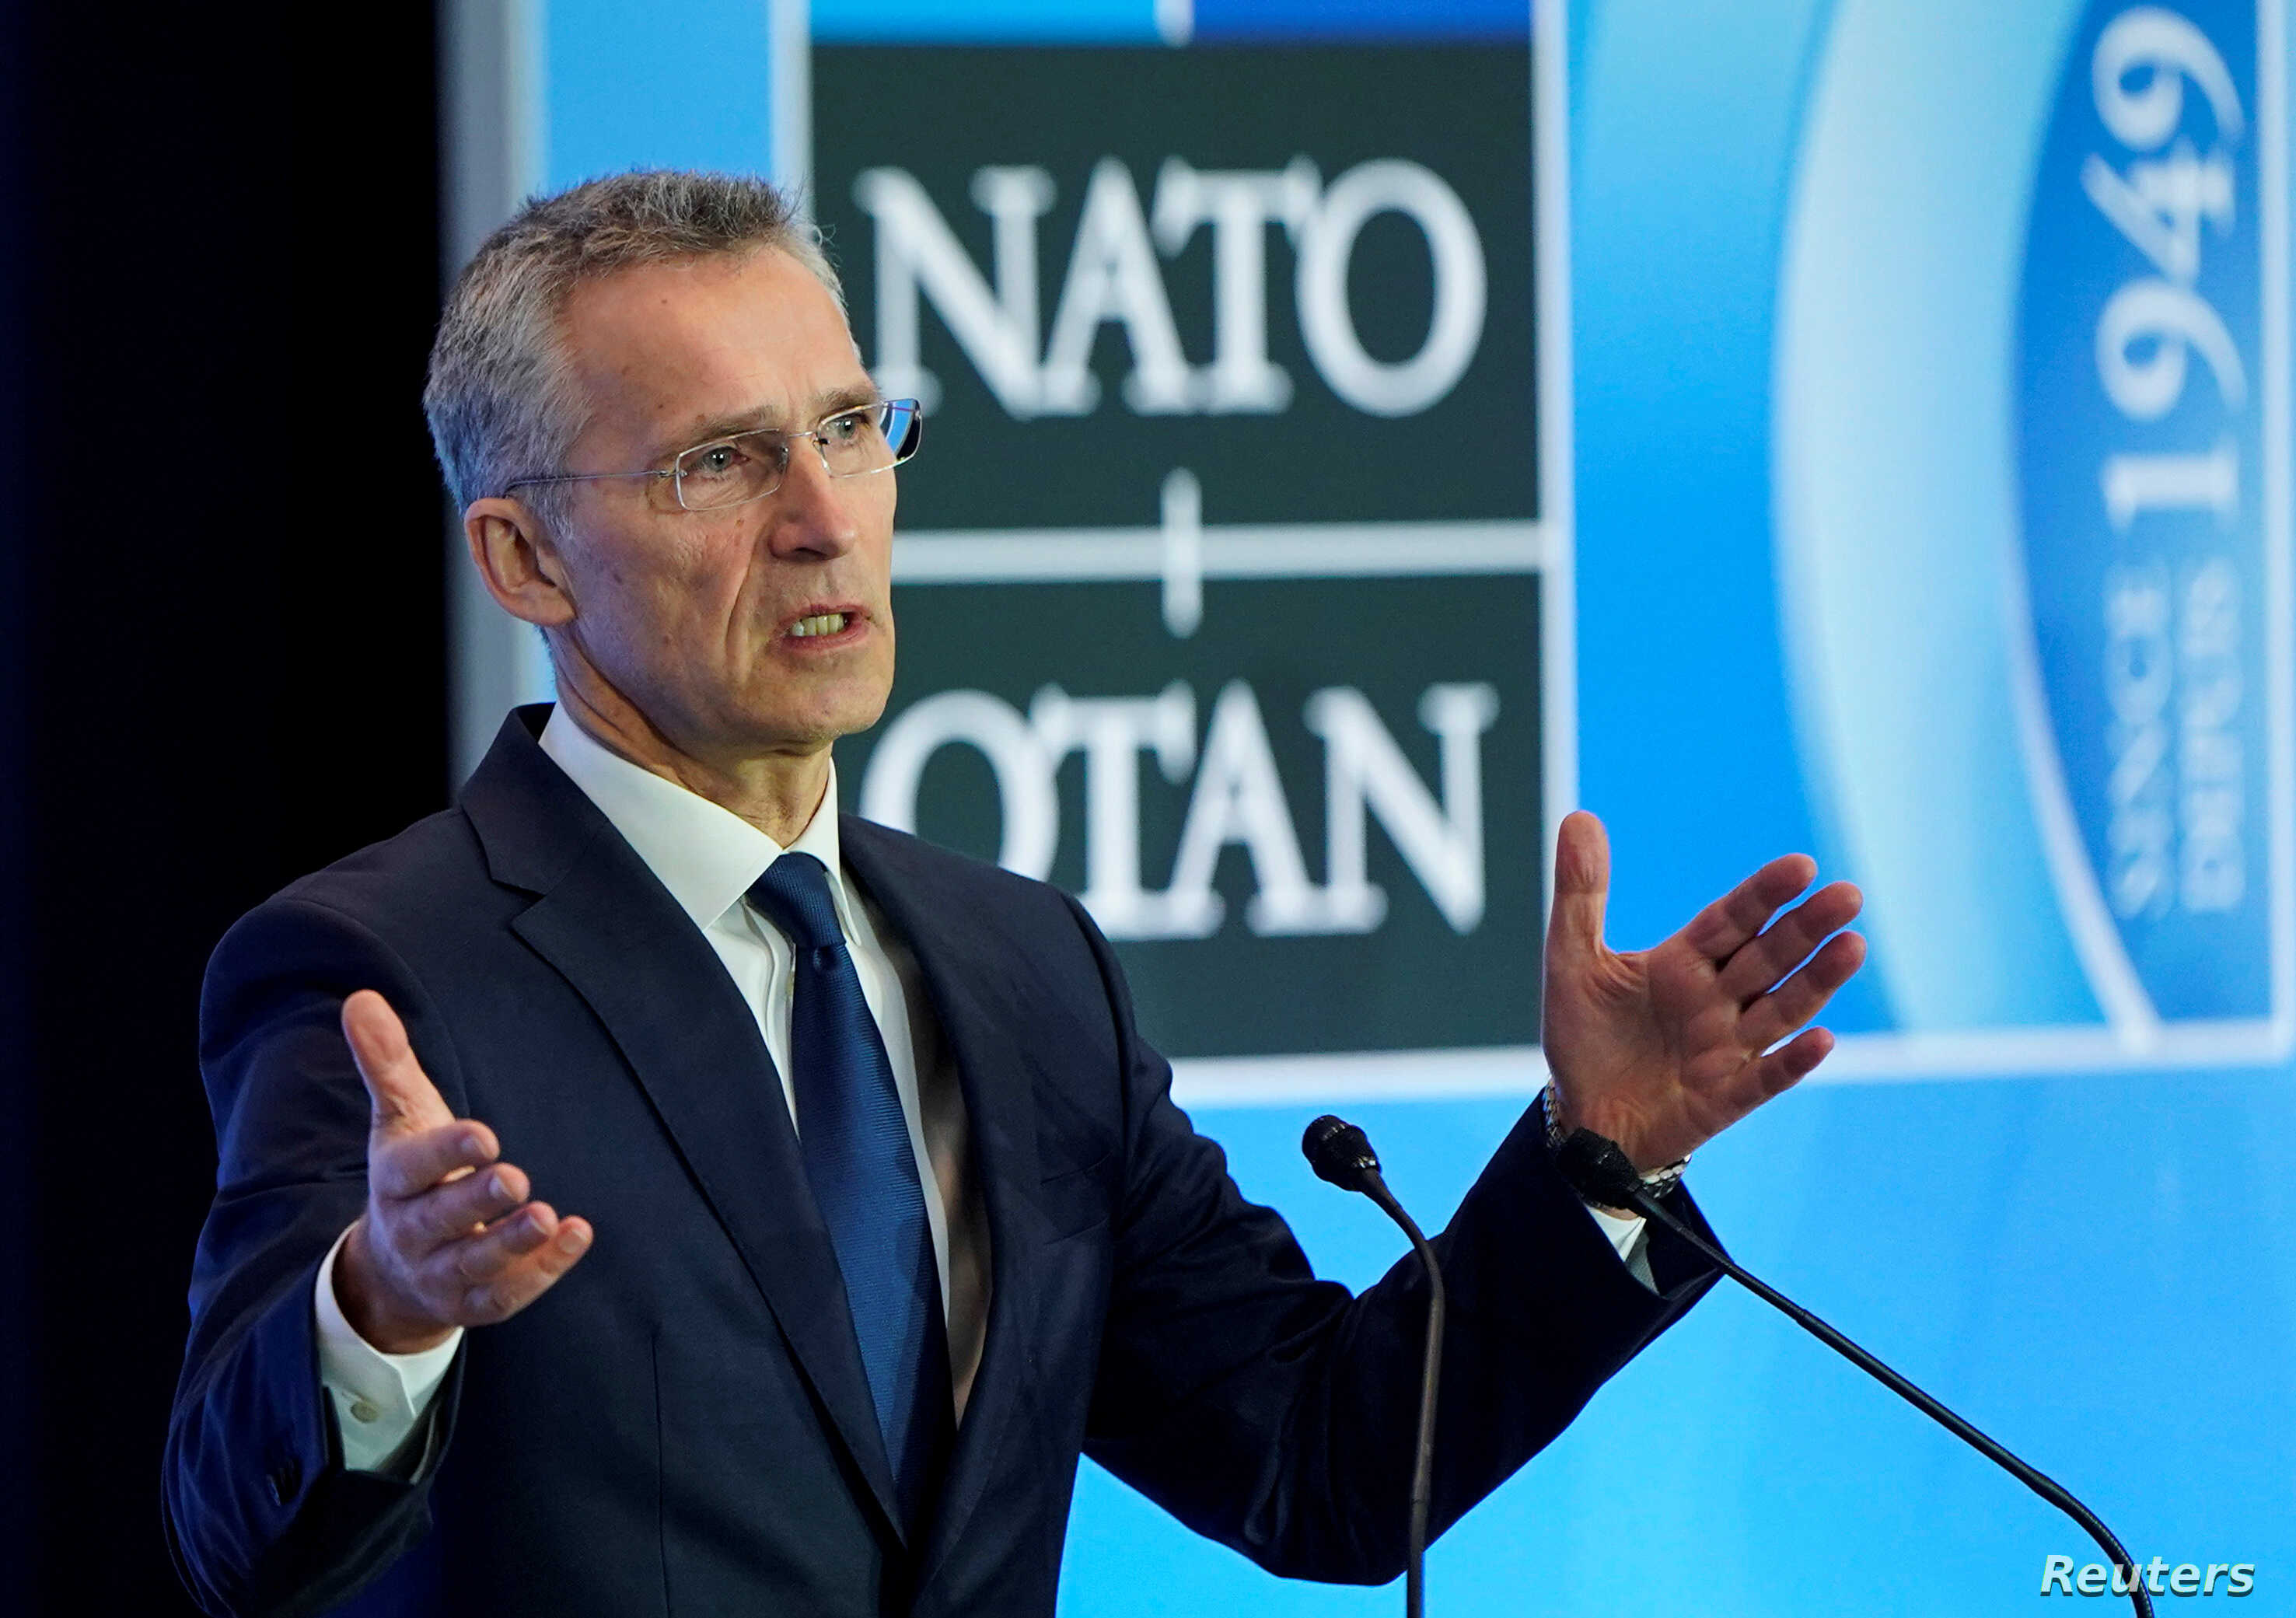 NATO Secretary General Jens Stoltenberg speaks to the media during the NATO Foreign Minister's Meeting at the State Department in Washington, April 4, 2019.